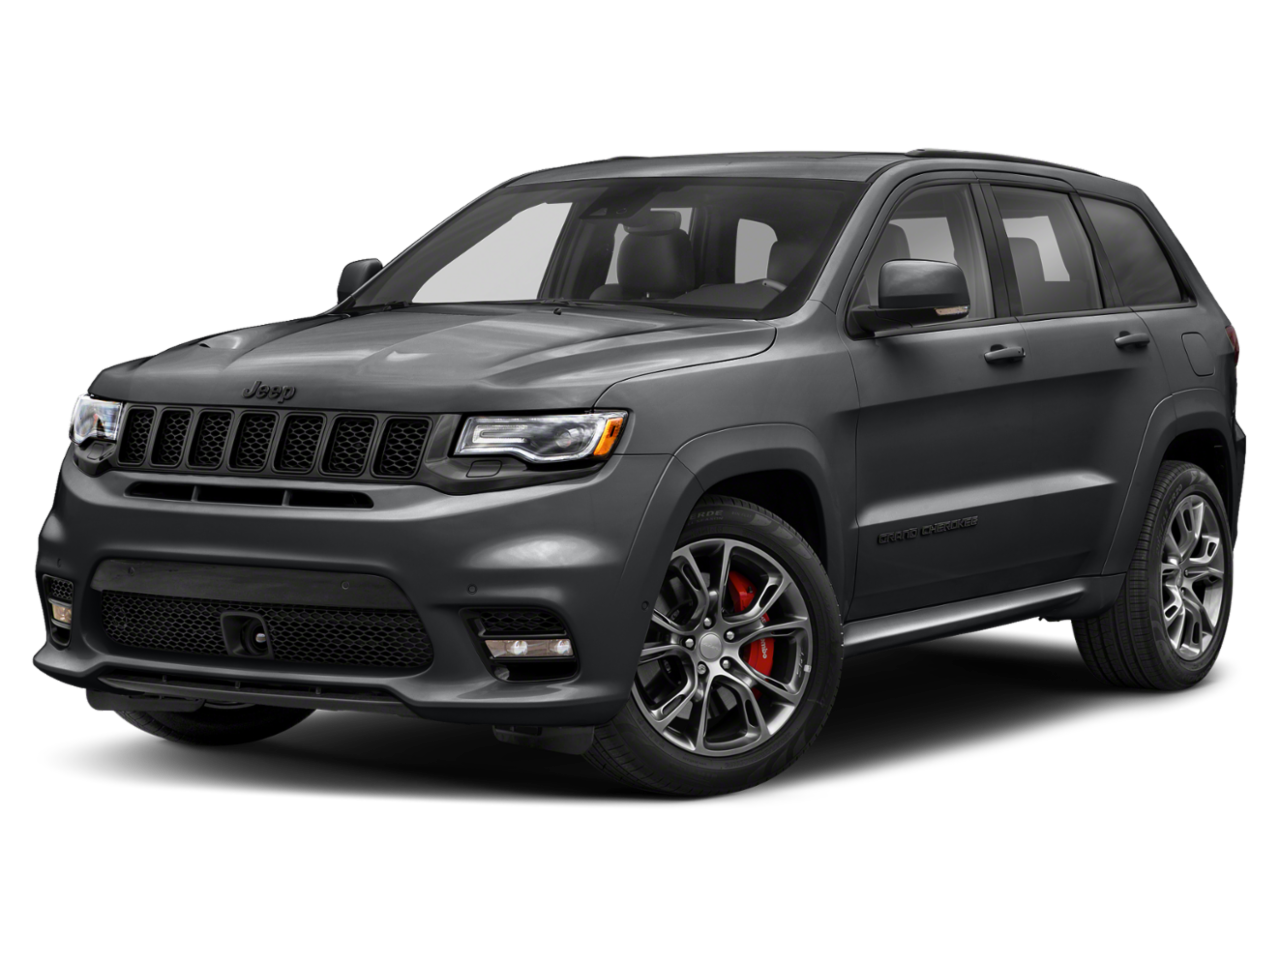 Jeep 2021 Grand Cherokee SRT